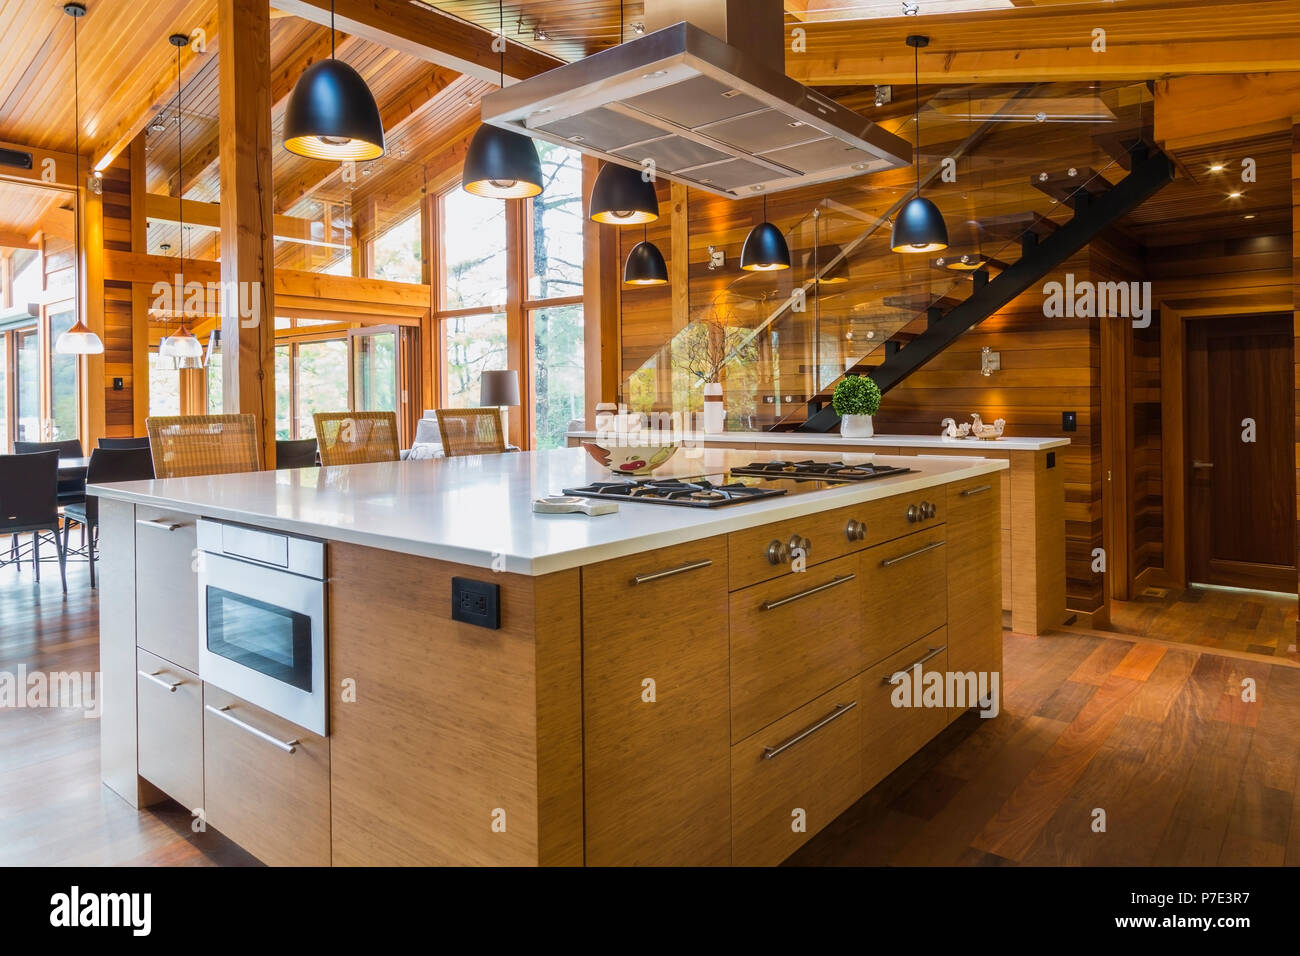 Bamboo Wood Kitchen Island With White Quartz Countertops Luxurious Cedar Wood Home Stock Photo Alamy